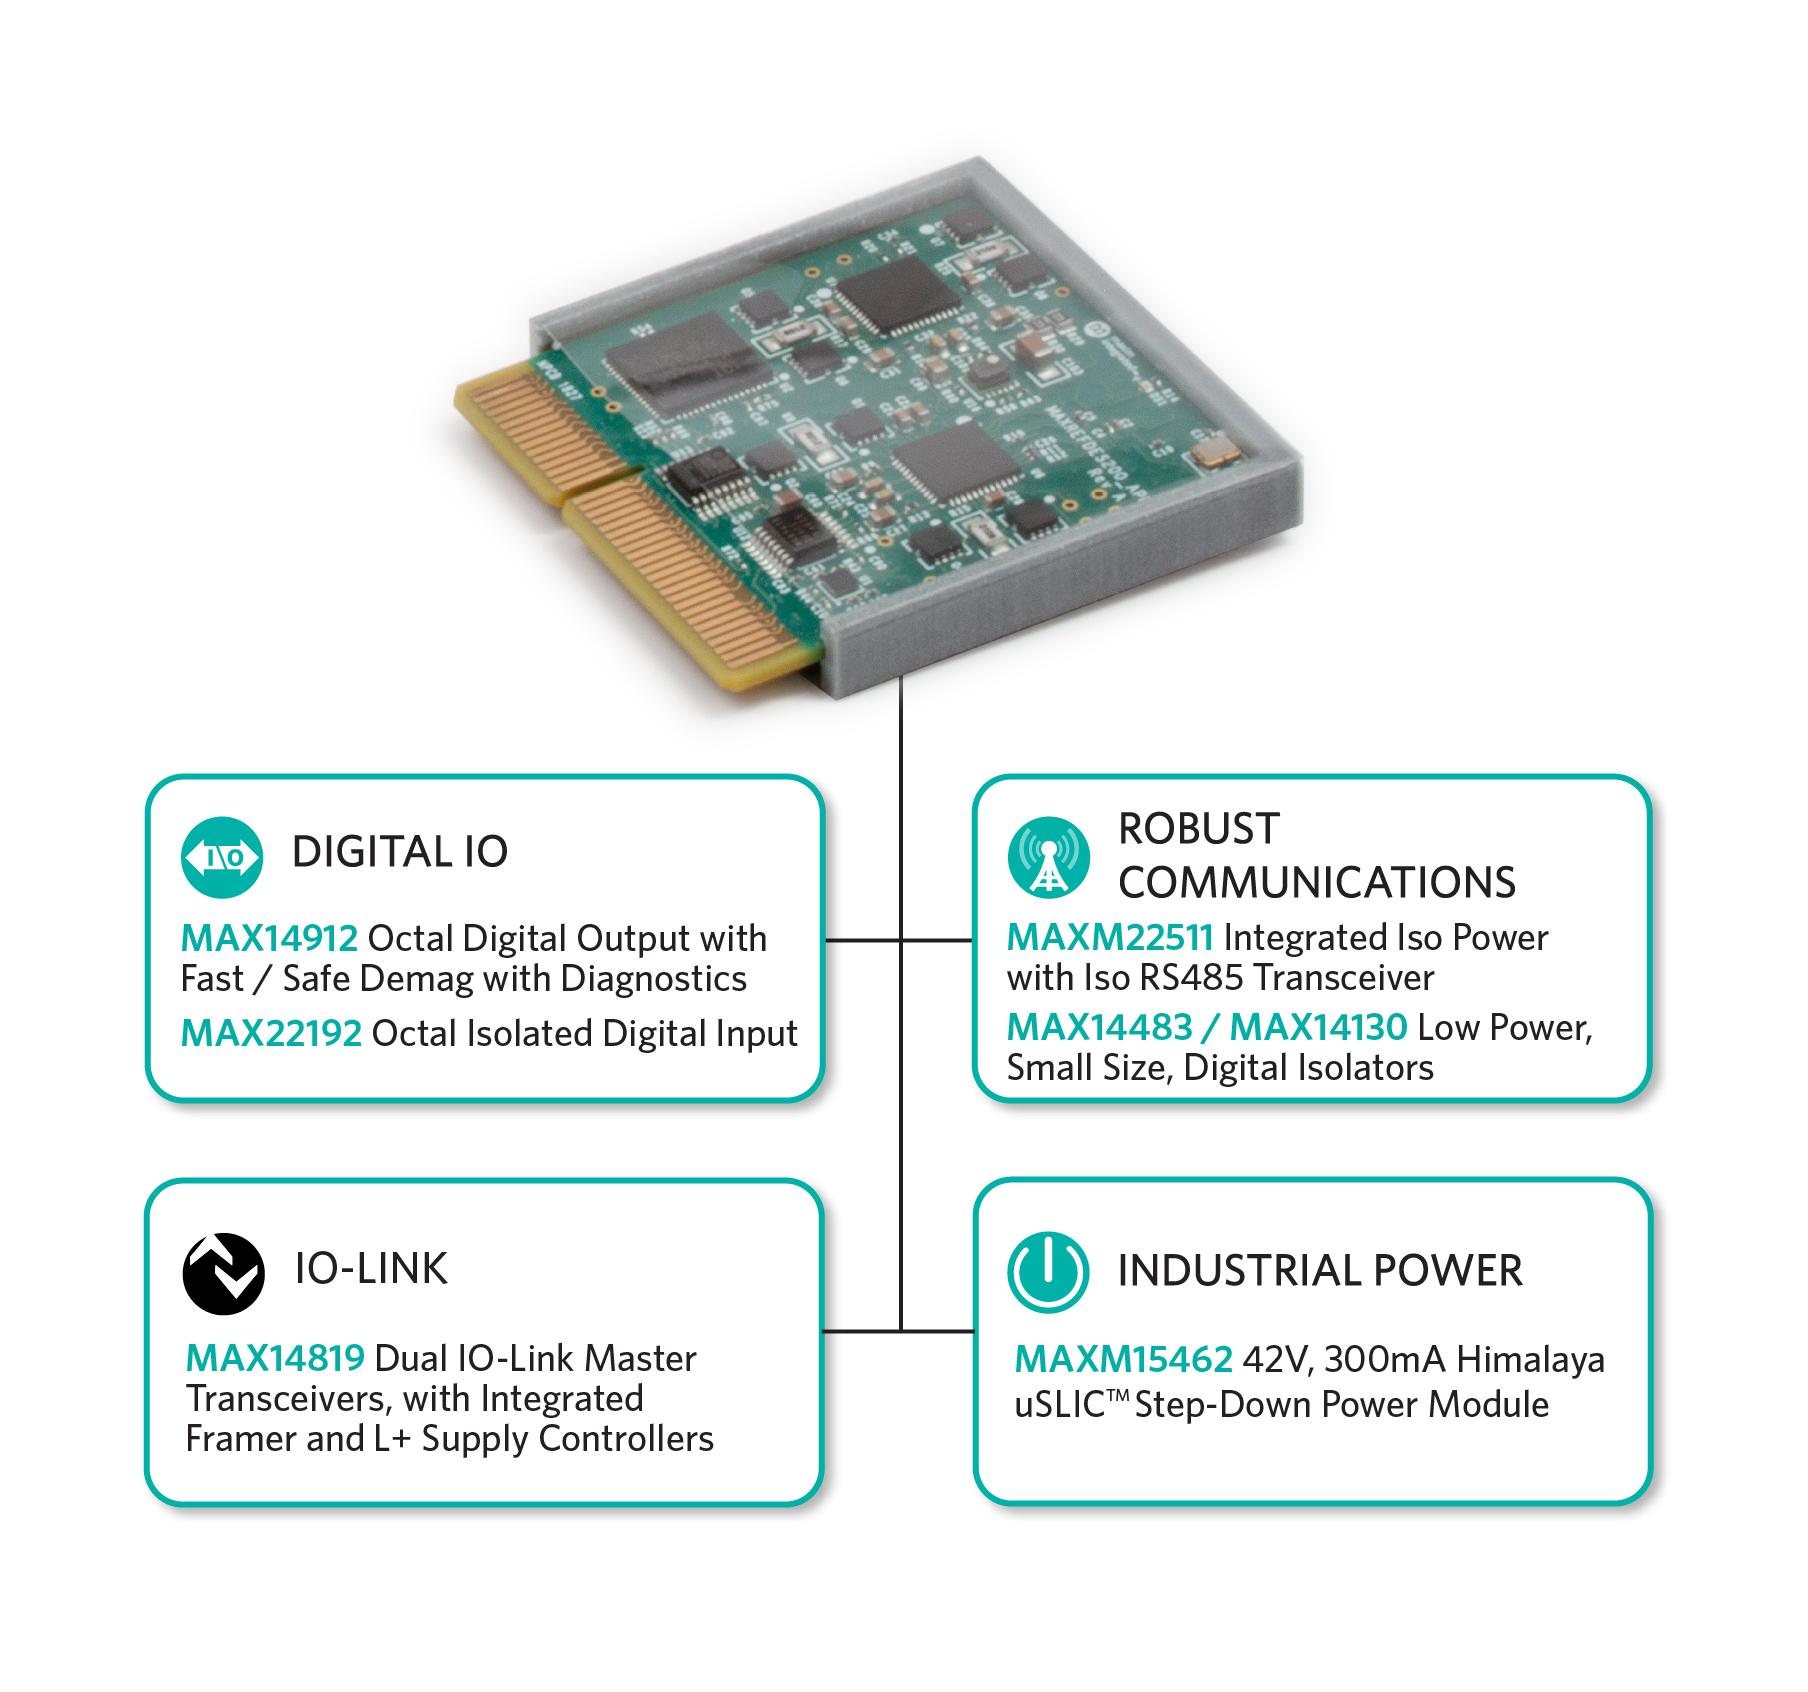 Maxims Go Io Drives Intelligence To The Digital Factory Edge Cie Block Diagram Flexible Rugged Open Source Reference Design Is Ideal For Industrial Automation Building And Robotics Applications